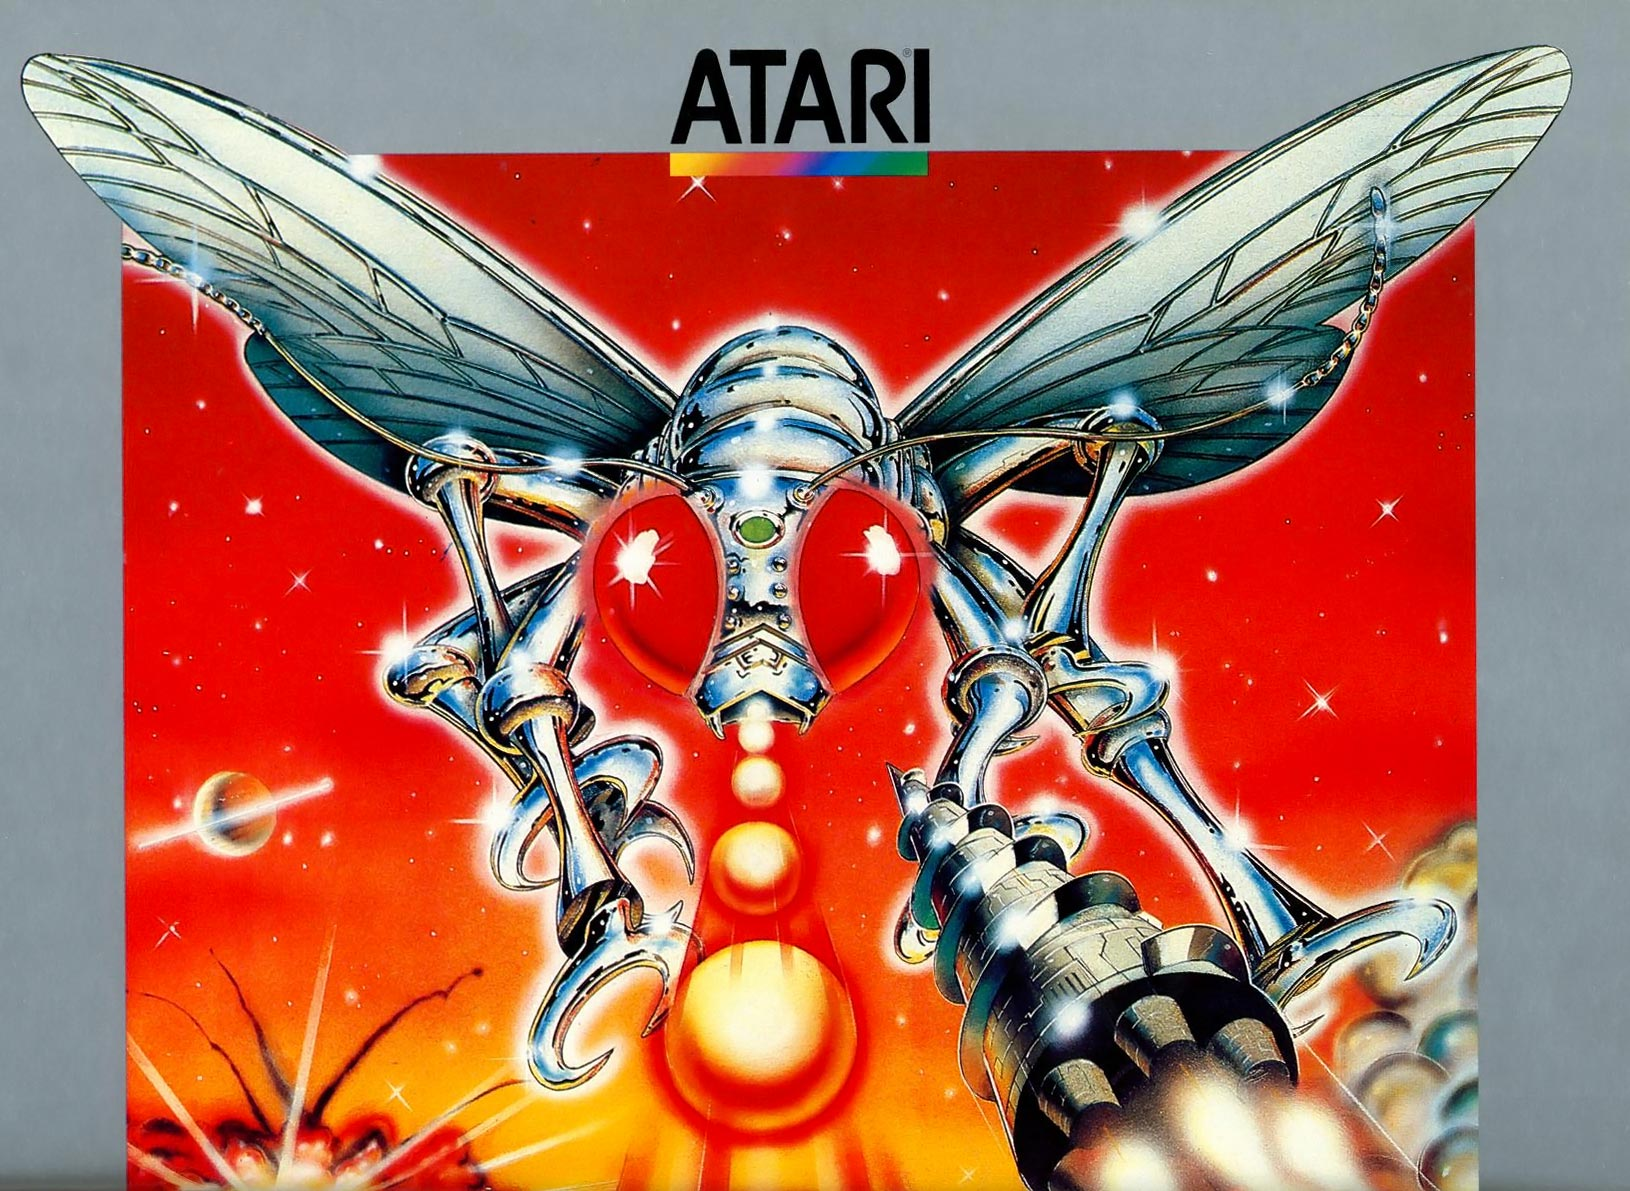 Yar's Revenge, a video game for the Atari 2600 home video game console